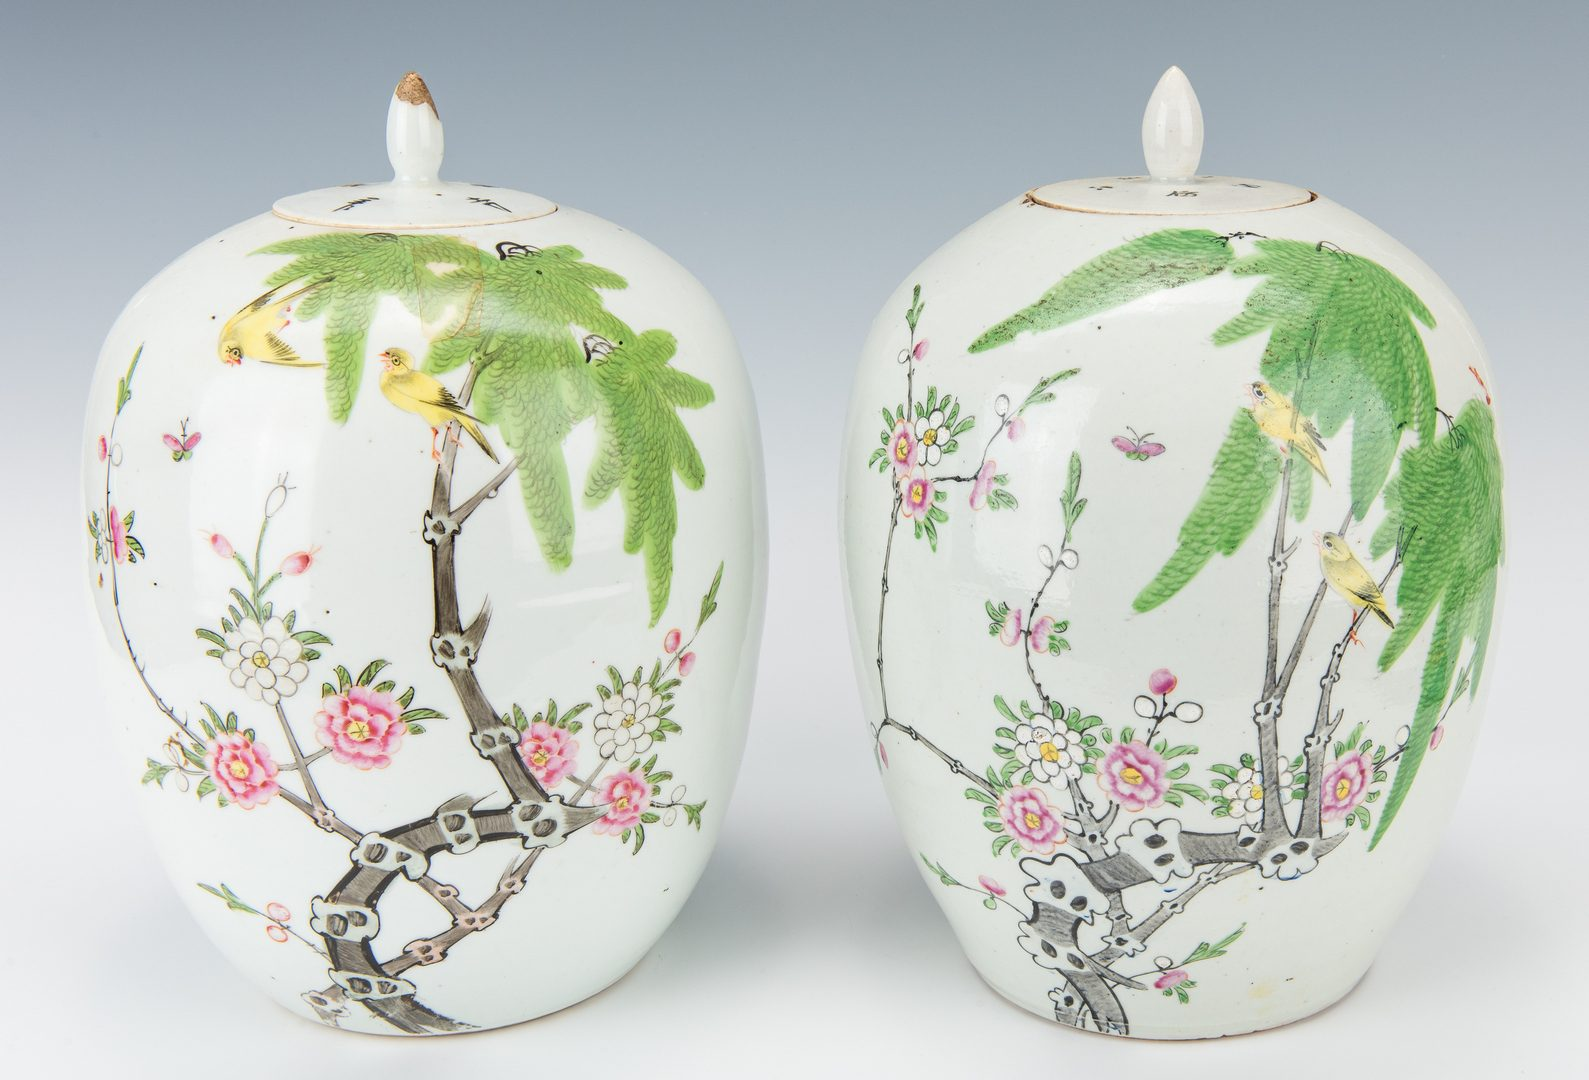 Lot 313: Pair of Chinese Porcelain Ginger Jars